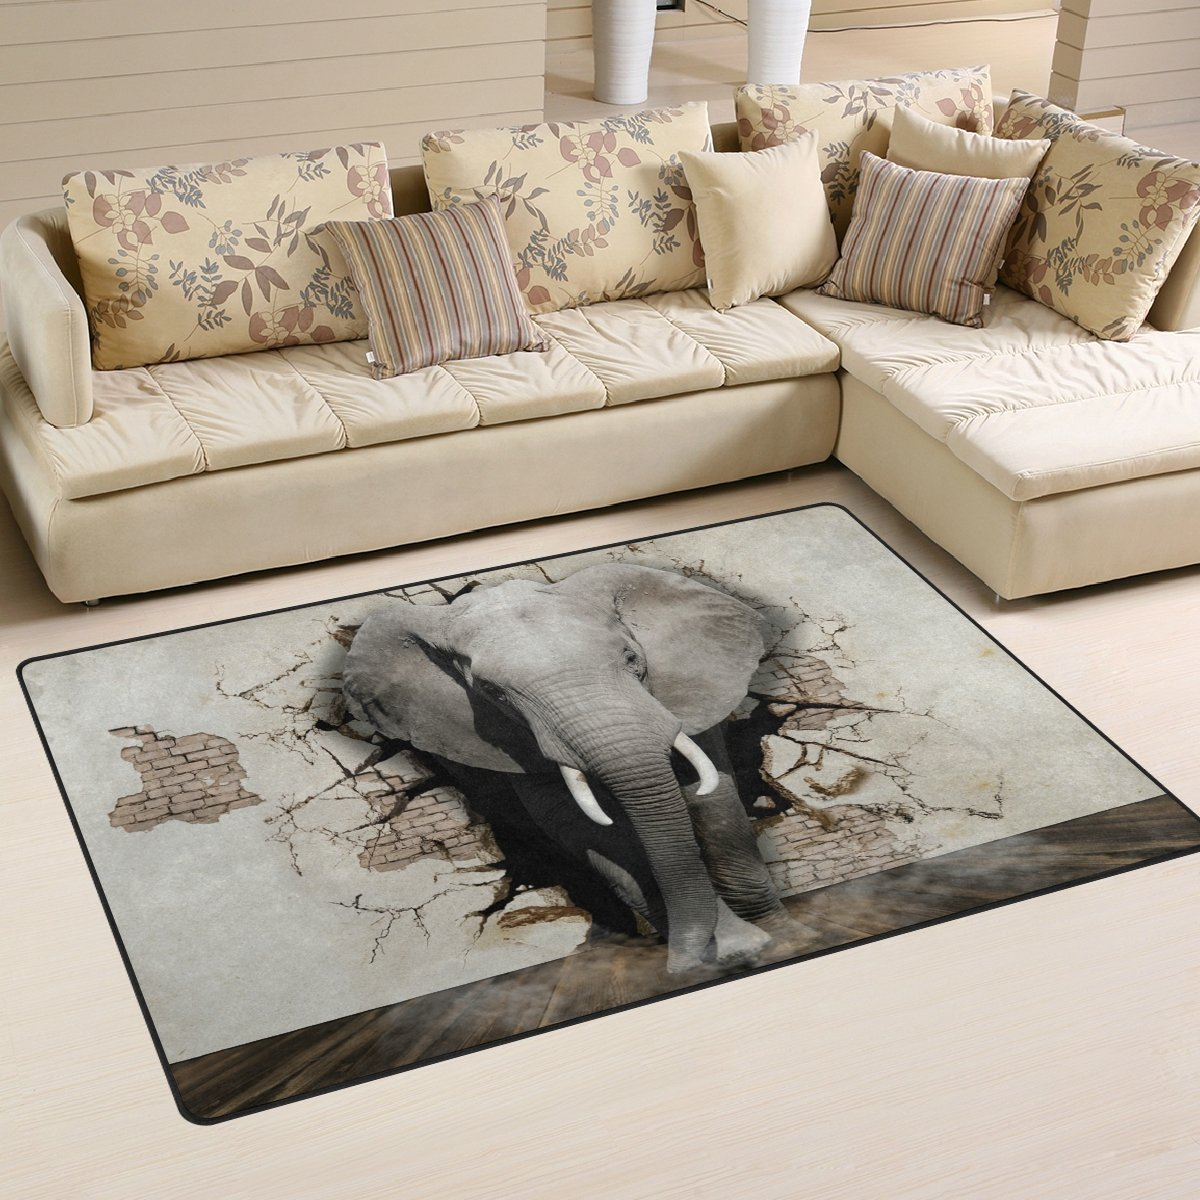 Amazon com elephant coming out of the wall area rug 60 x 39 inch doormat indoor outdoor decor carpet for entrance living room bedroom office kitchen